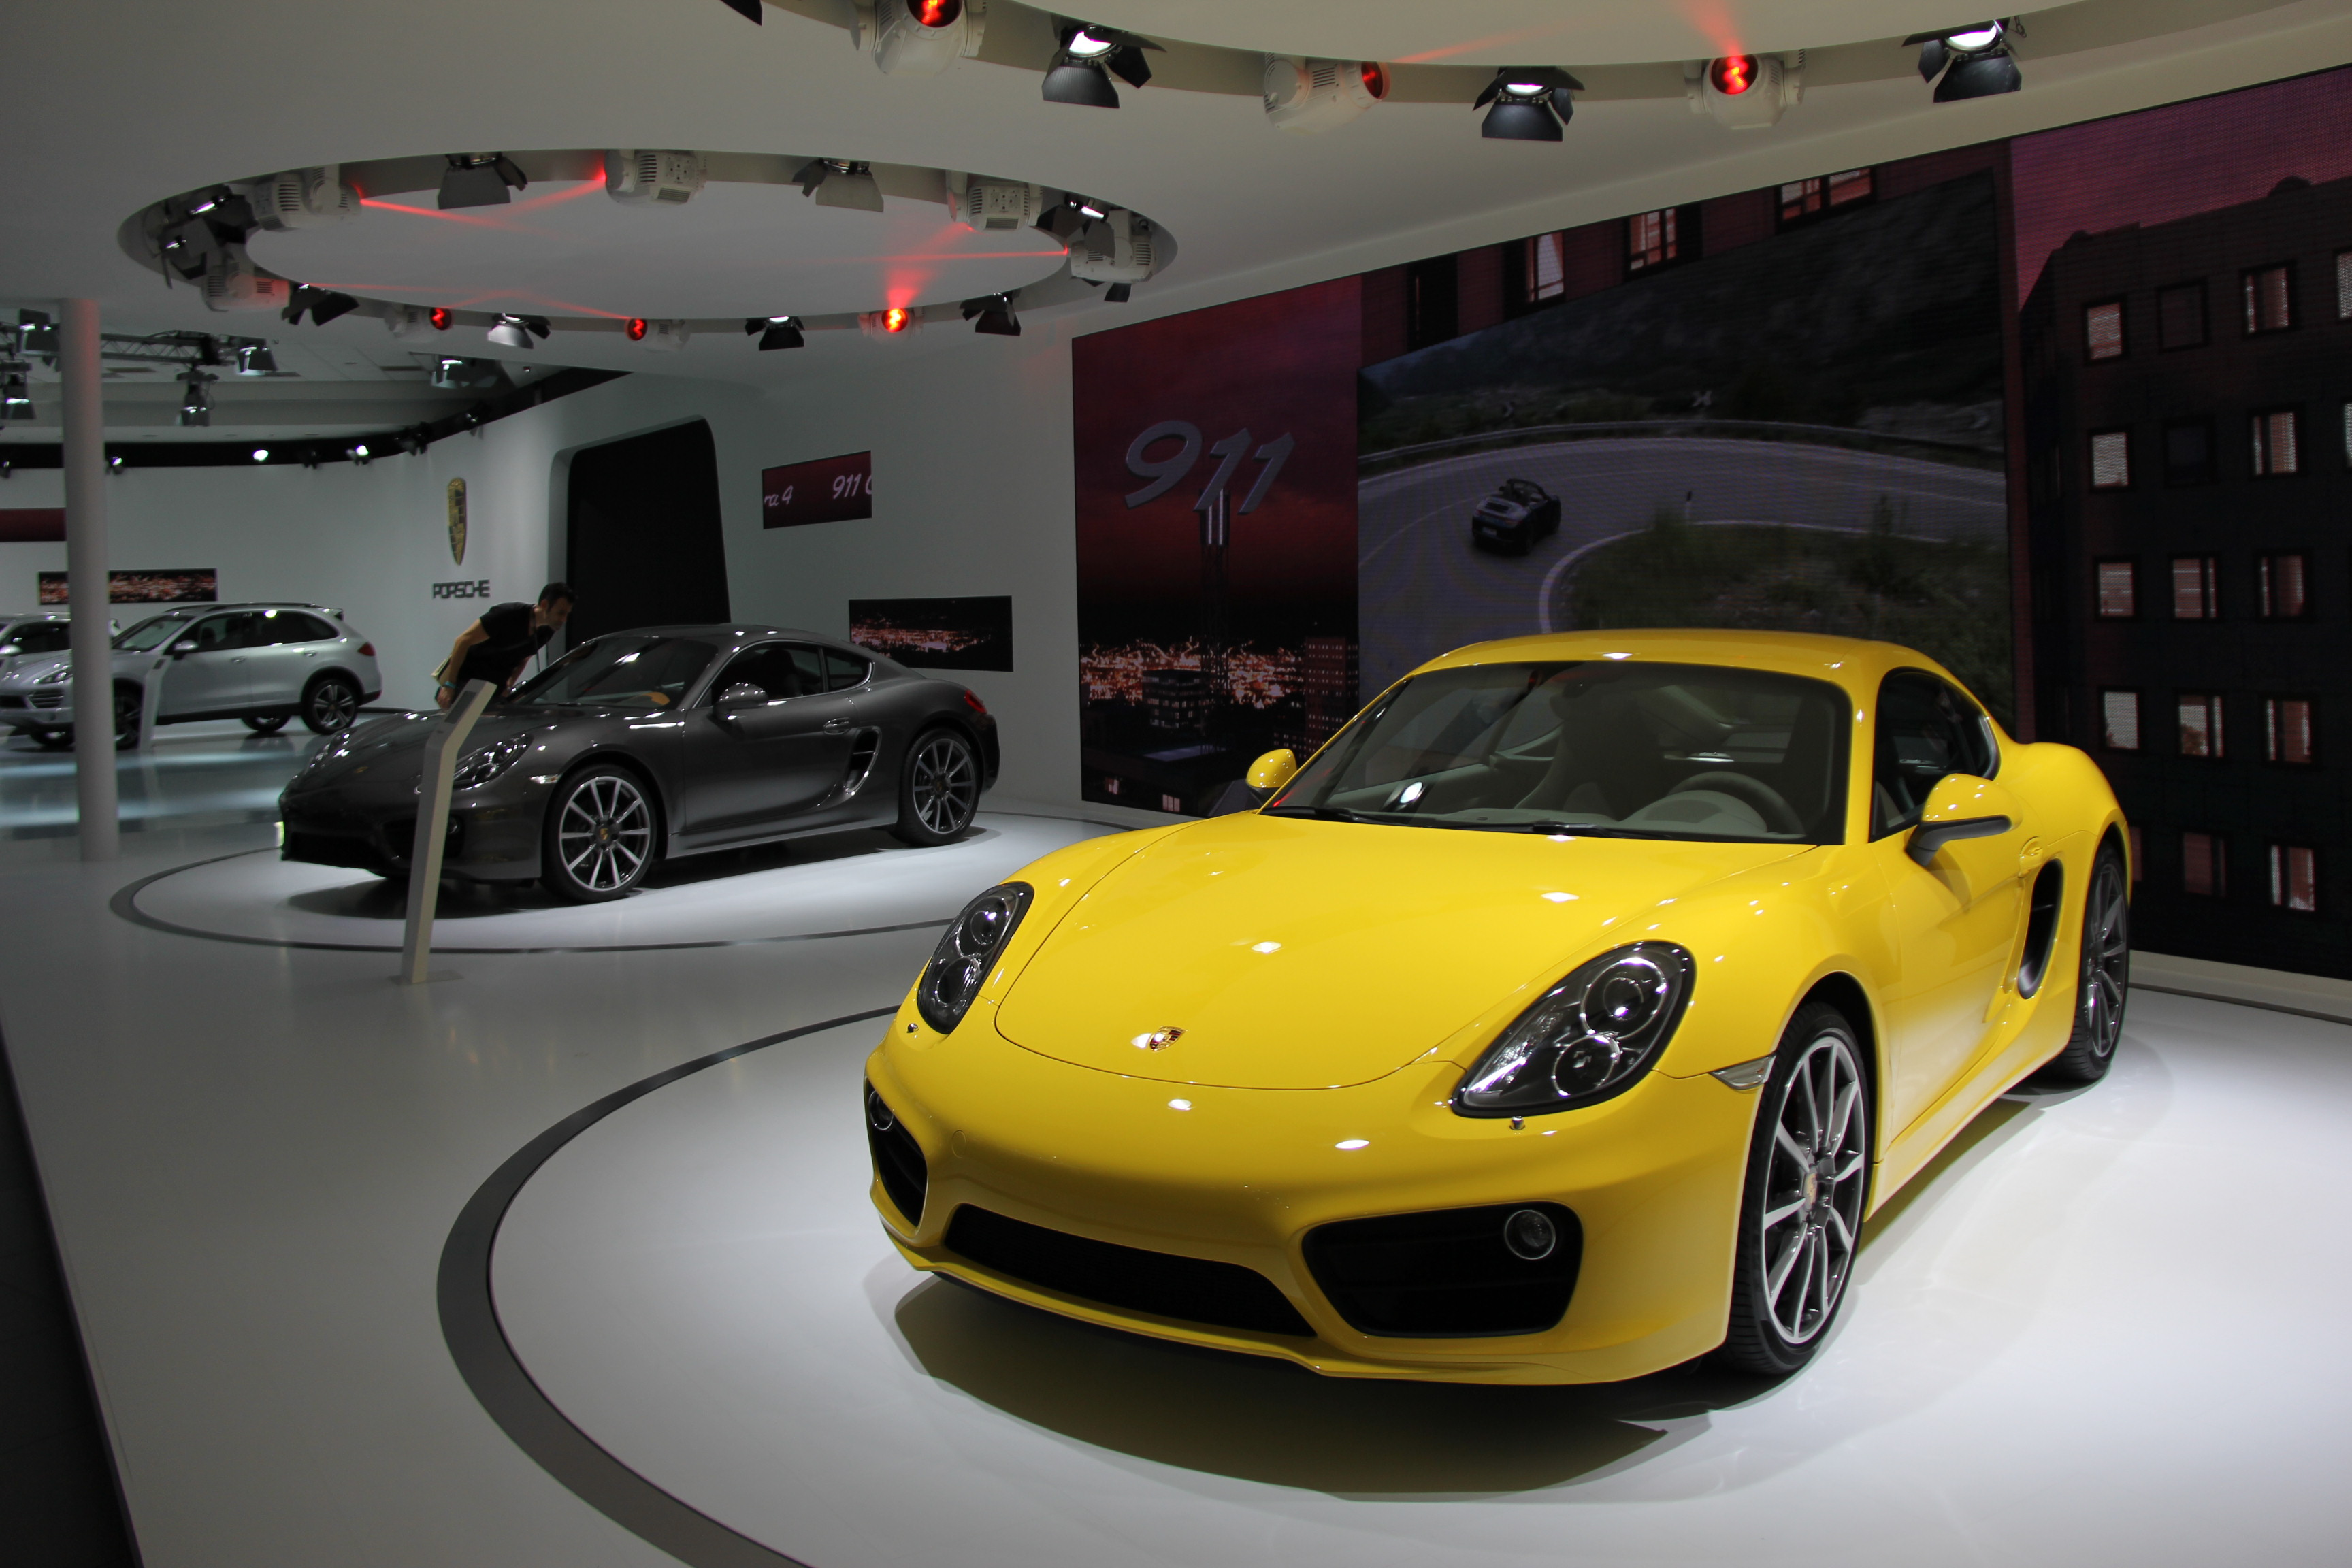 2013-porsche-cayman-yellow-2012-los-angeles-auto-show-by-angel_blue_01